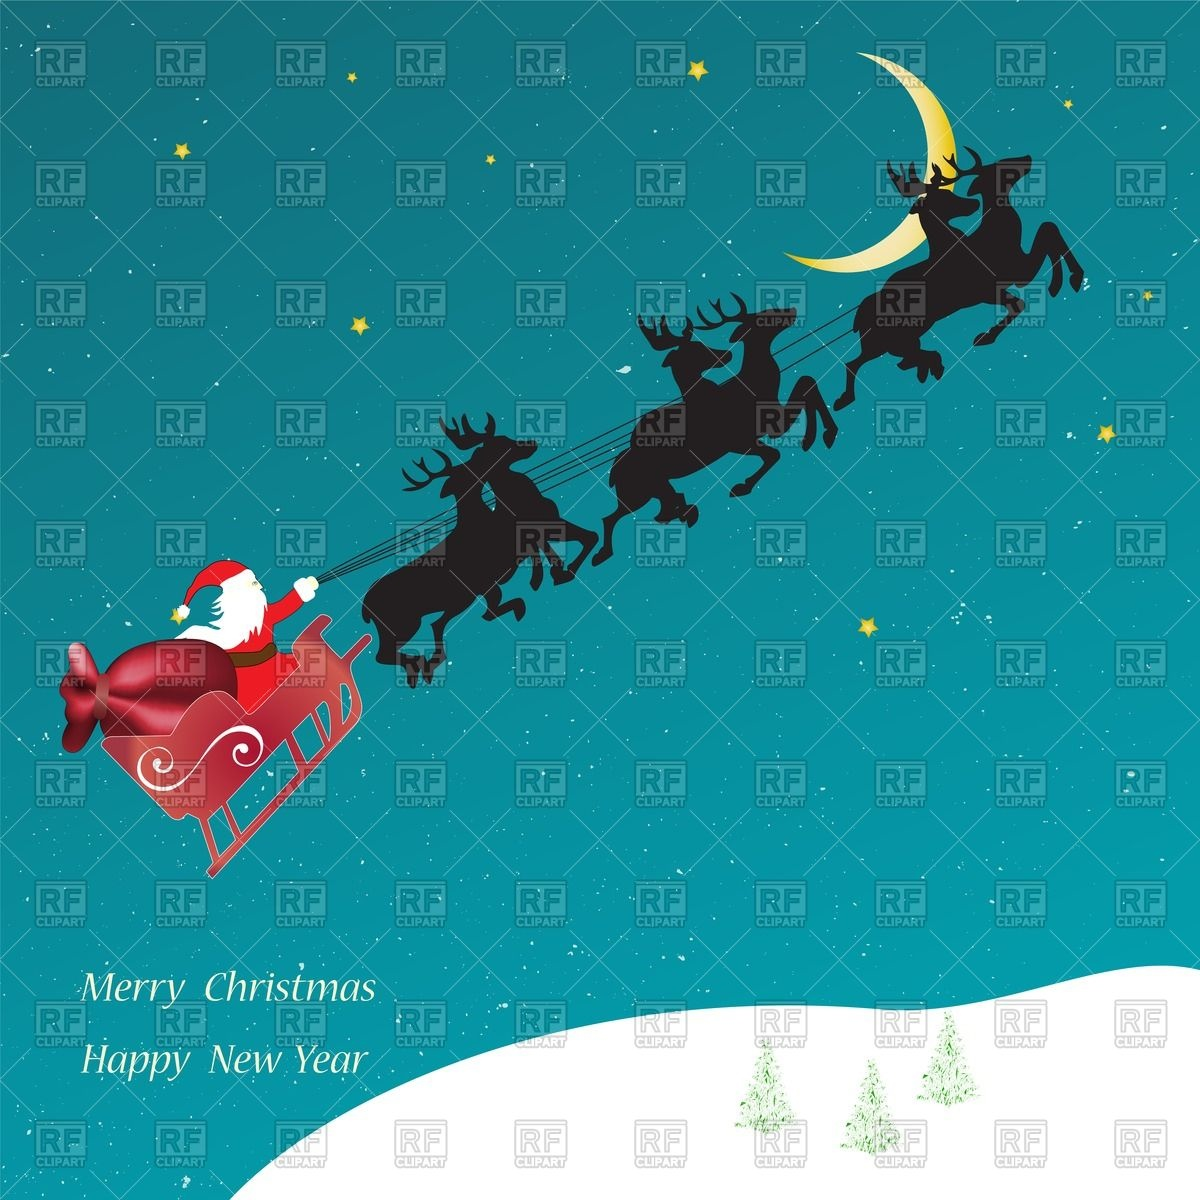 1200x1200 Christmas Card With Santa Claus On Flying Sledge Vector Image